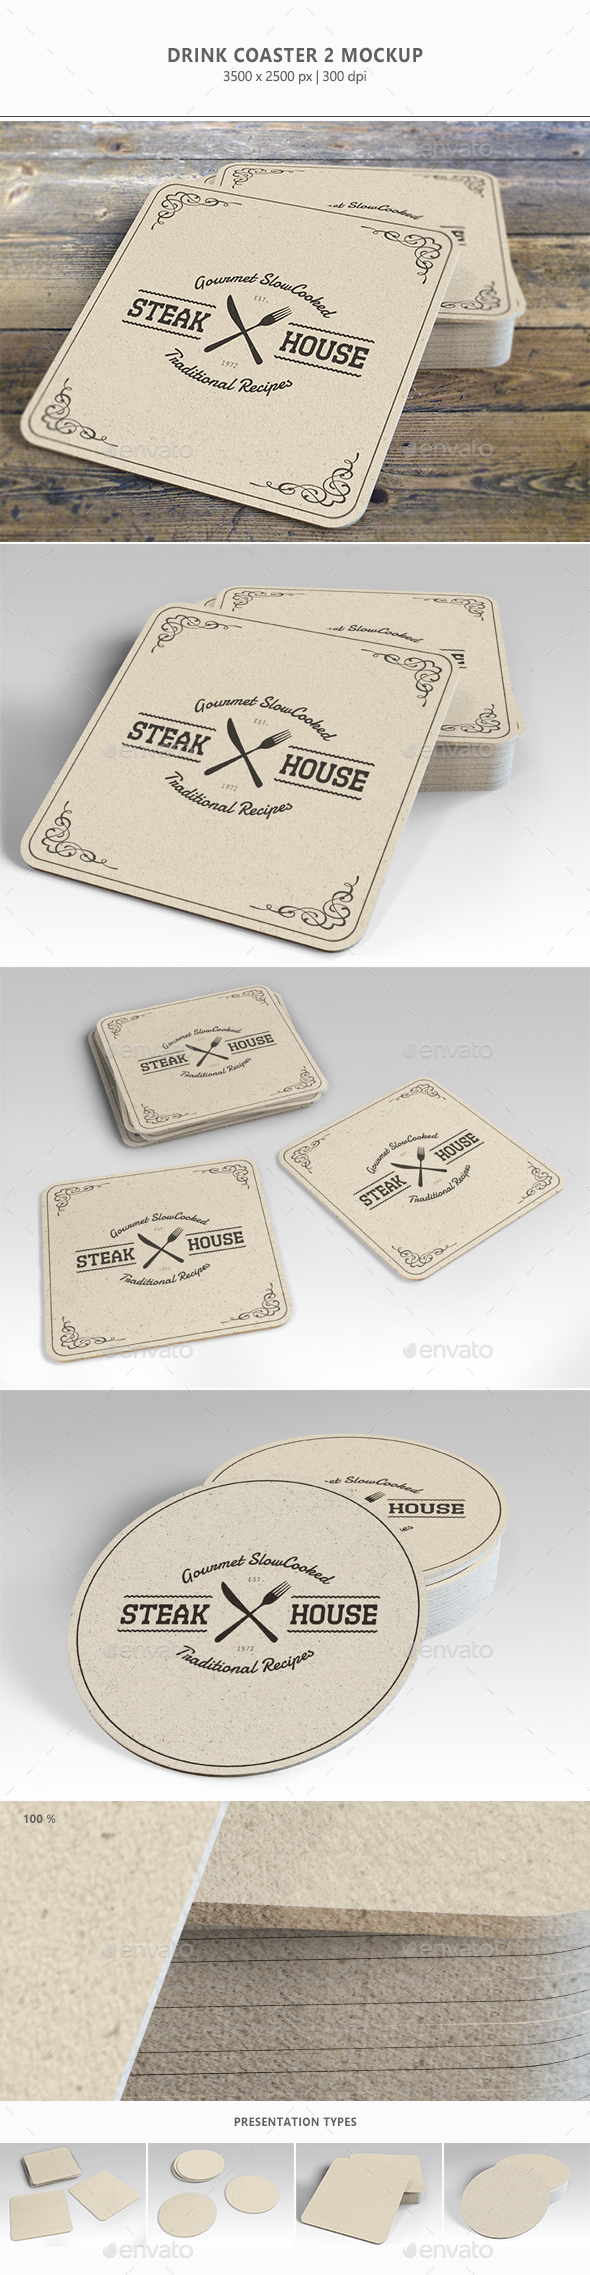 Drink Coaster Mock-Up Vol. 2 - Miscellaneous Product Mock-Ups